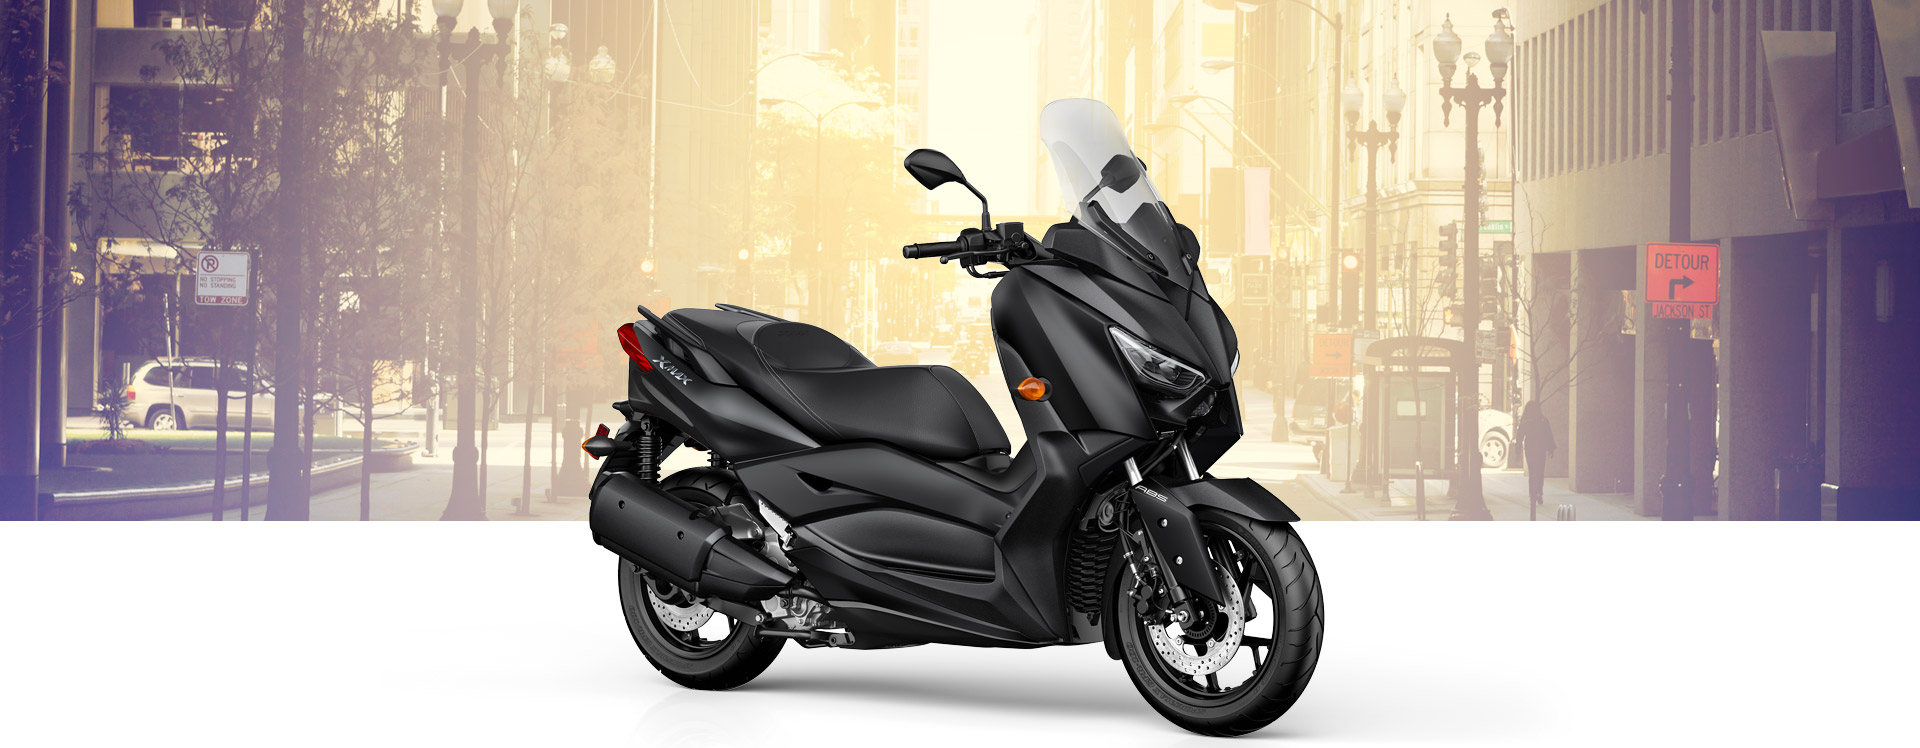 2019 Yamaha Xmax Scooter Motorcycle Model Home